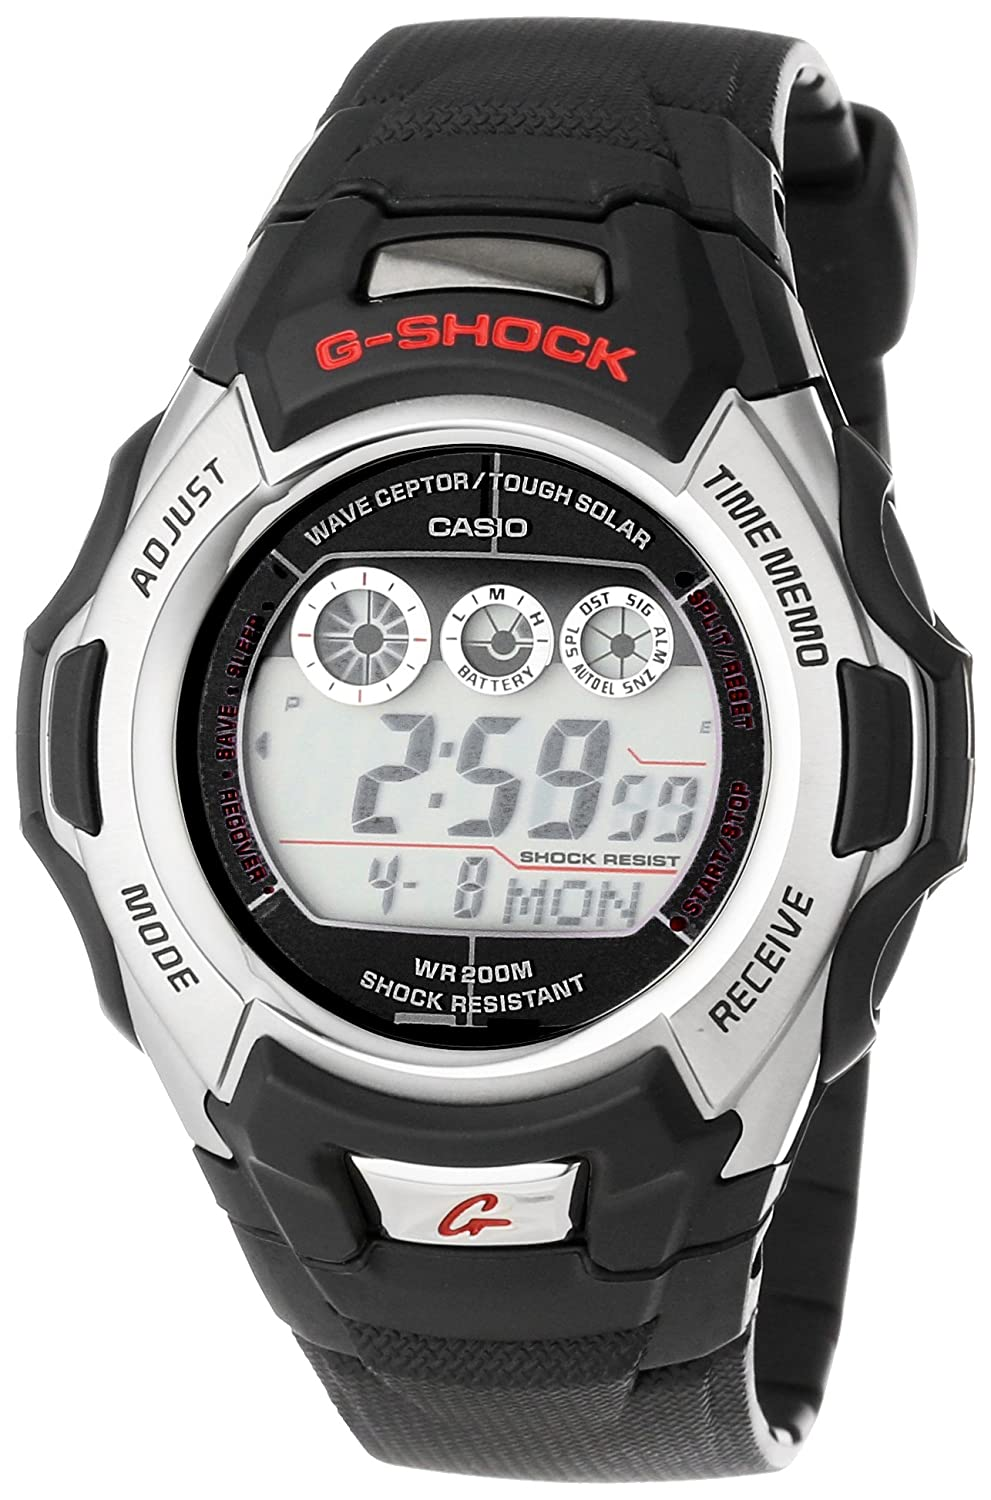 Casino g-shock gw500a-1av solar atomic watch manual apex slot machines free play